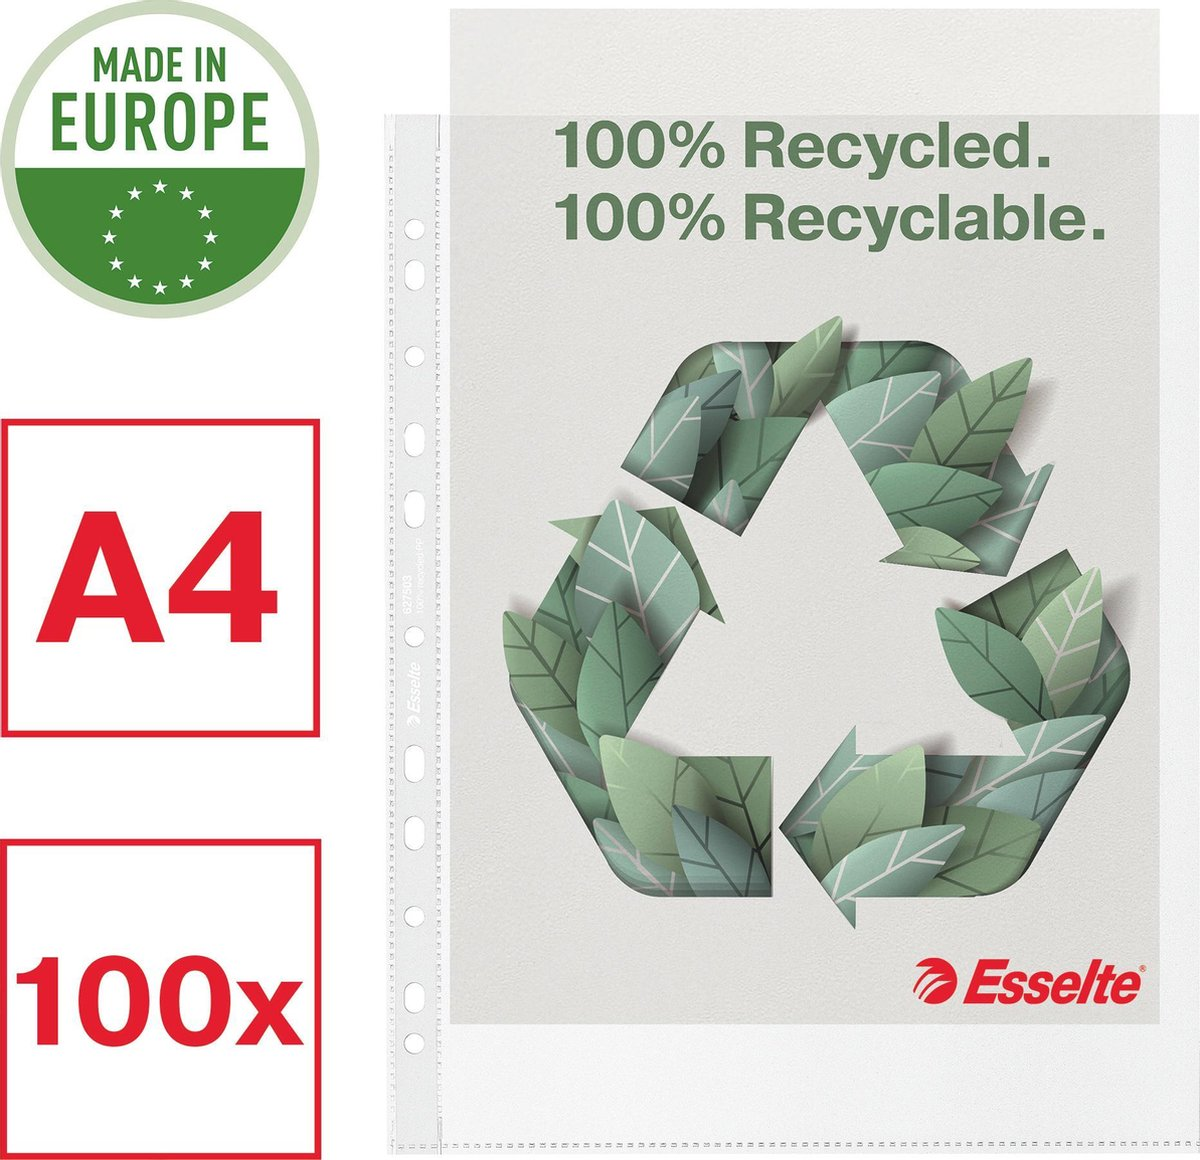 Esselte Recycle PP Showtas A4 Maxi - 100 Insteekhoezen - Transparant